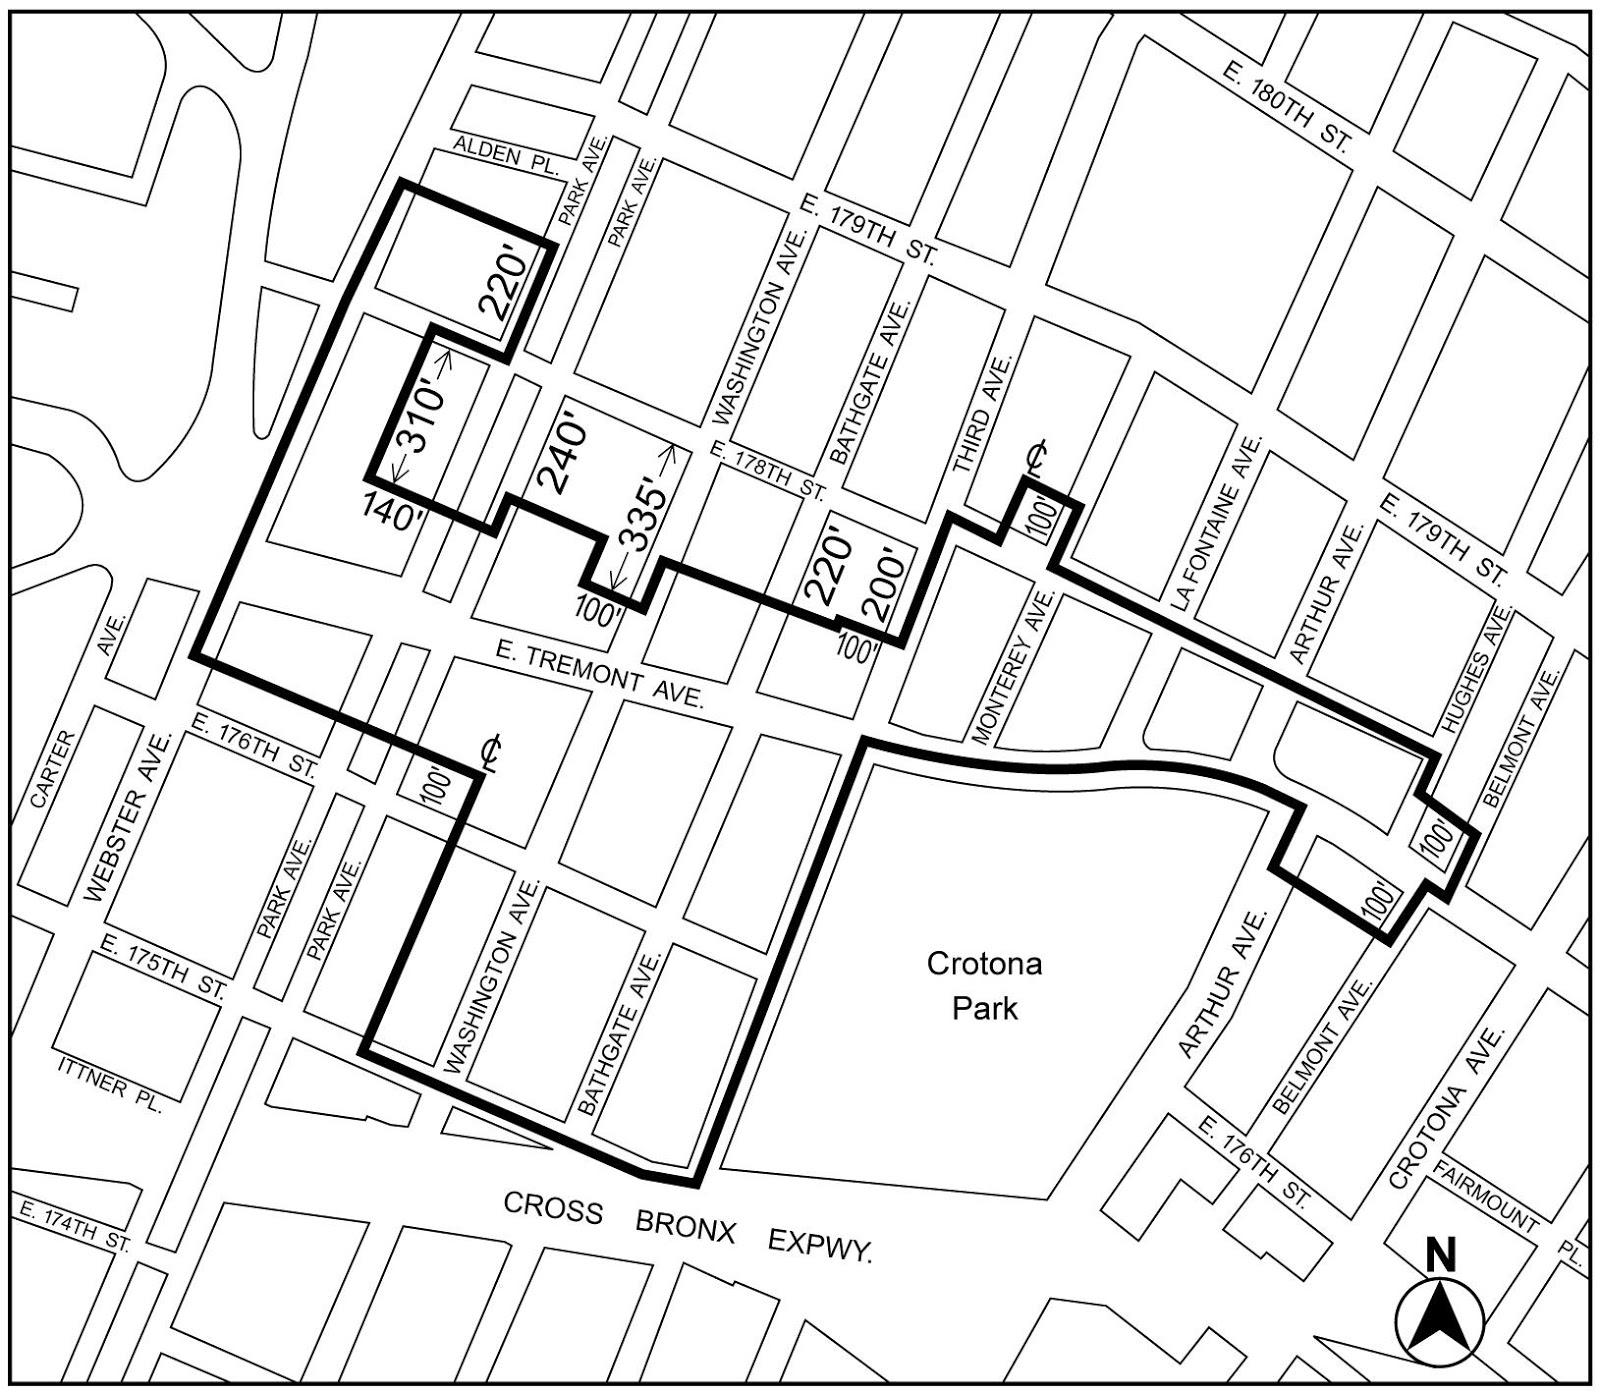 Zoning Resolutions F-Inclusionary Housing Designated Areas and Mandatory Inclusionary Housing Areas_2.22